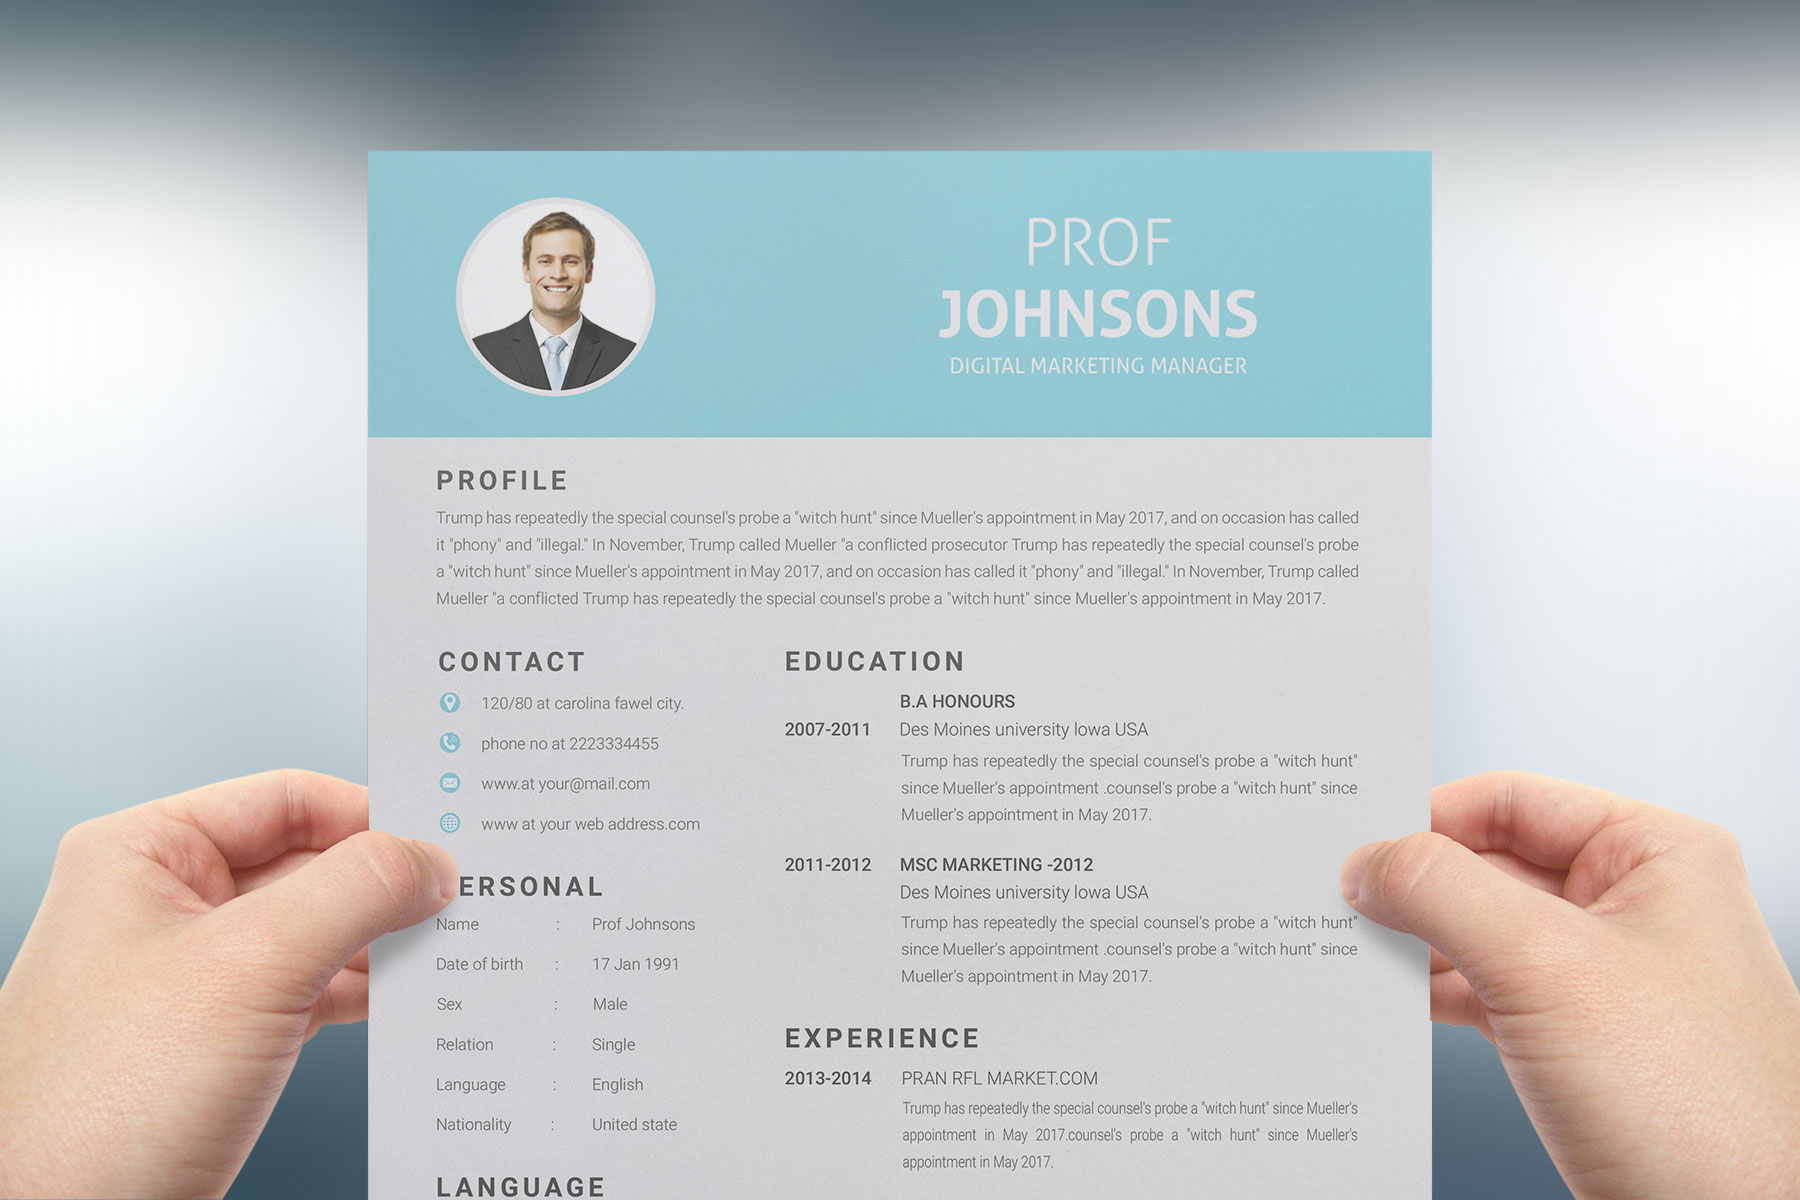 Professional Cv Resume Bonus business card Word/PSD,AI example image 2